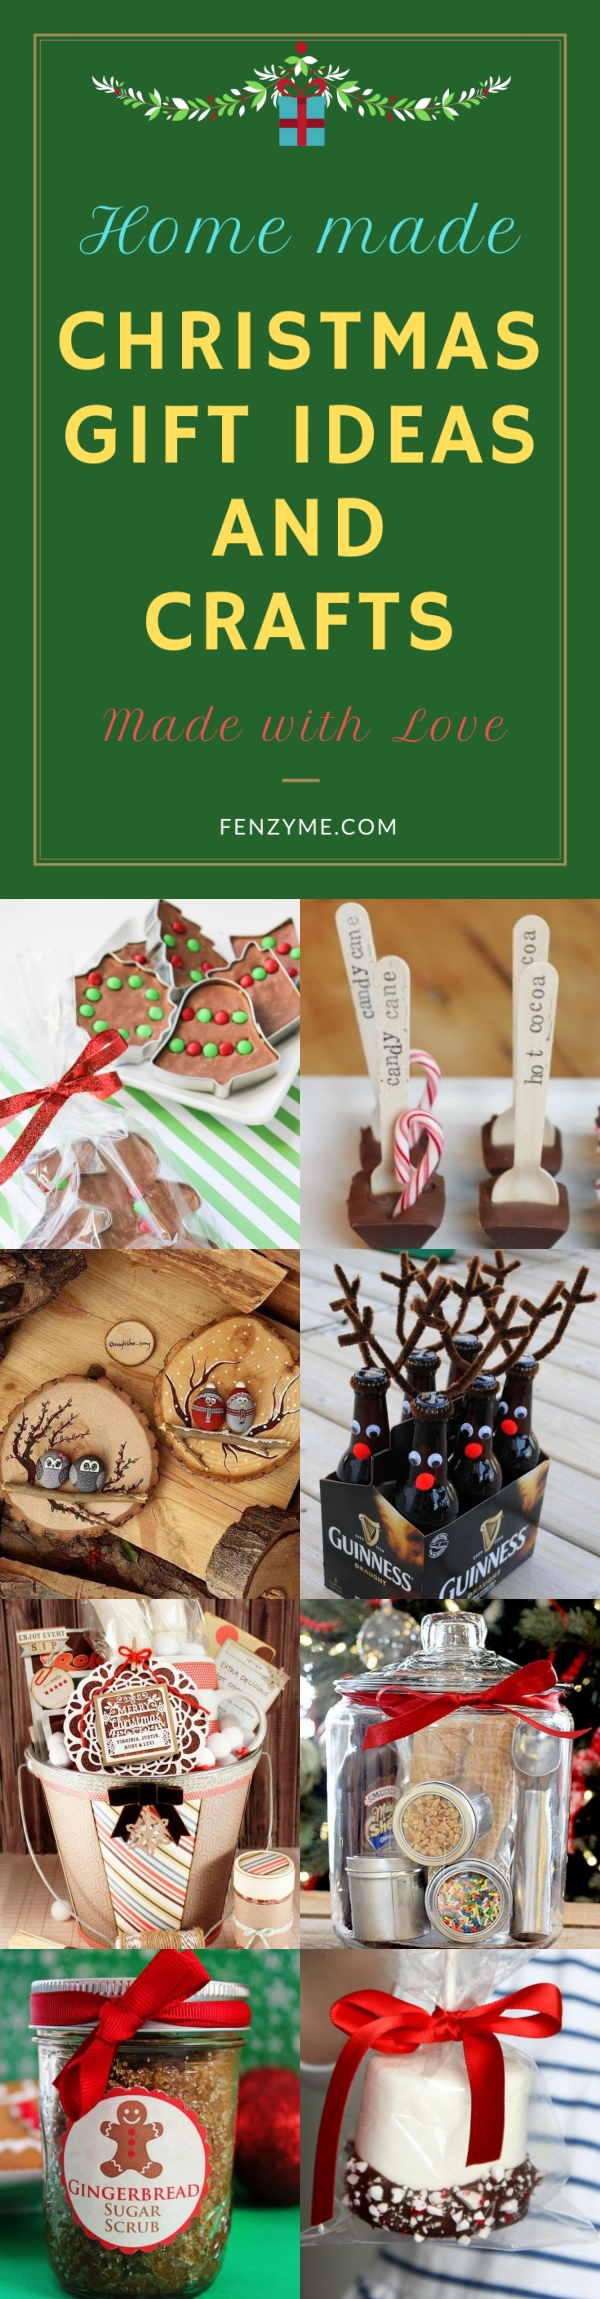 Homemade Christmas Gift Ideas and Crafts (Made with Love)